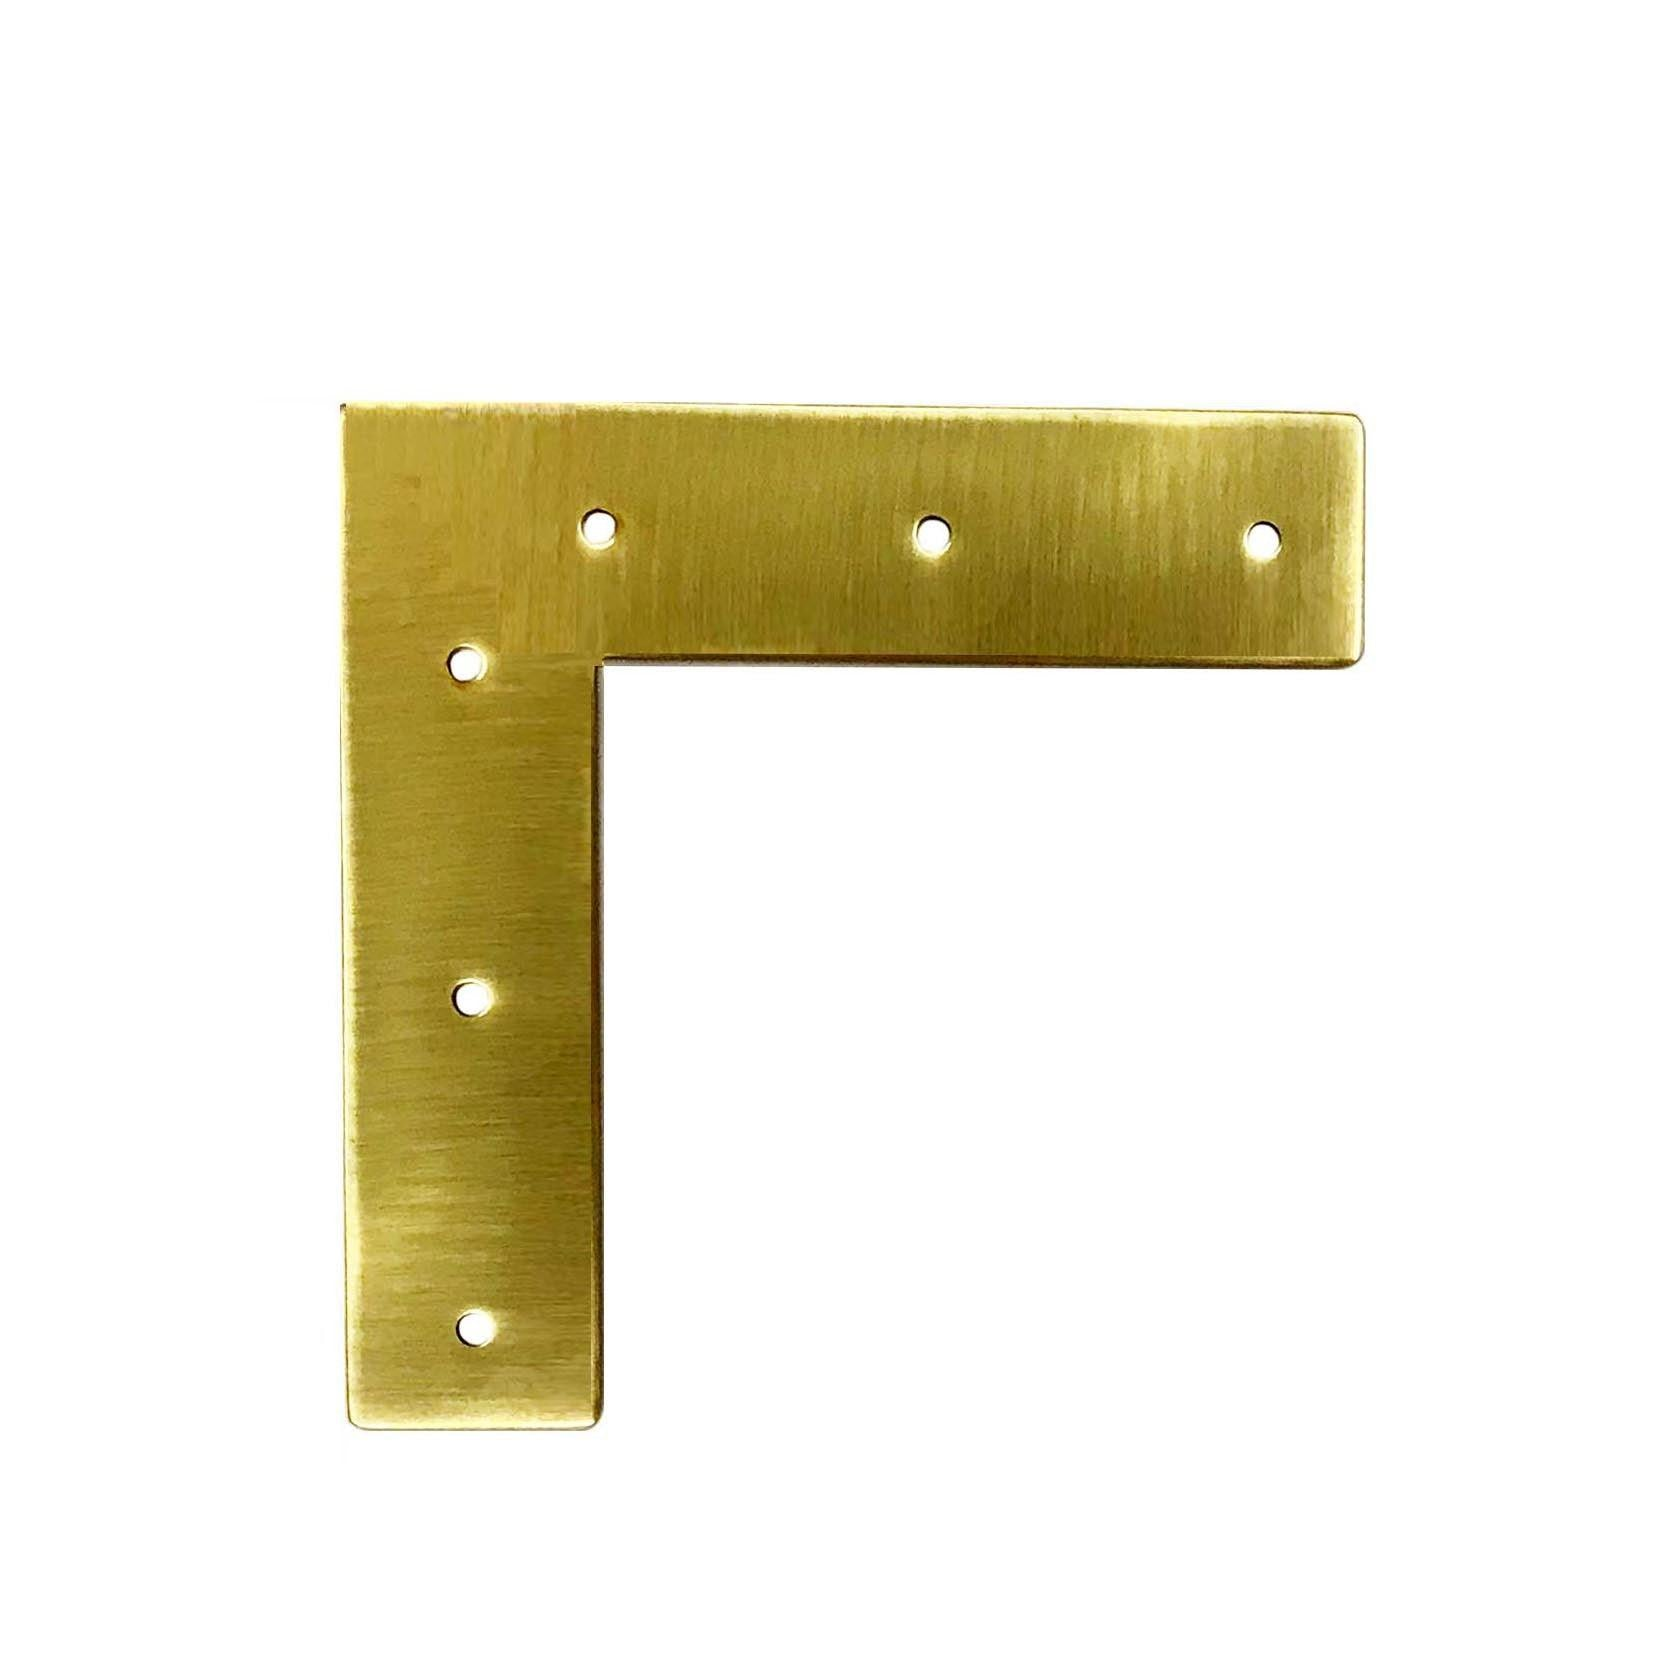 Brass Furniture Trim  L - paxton hardware ltd